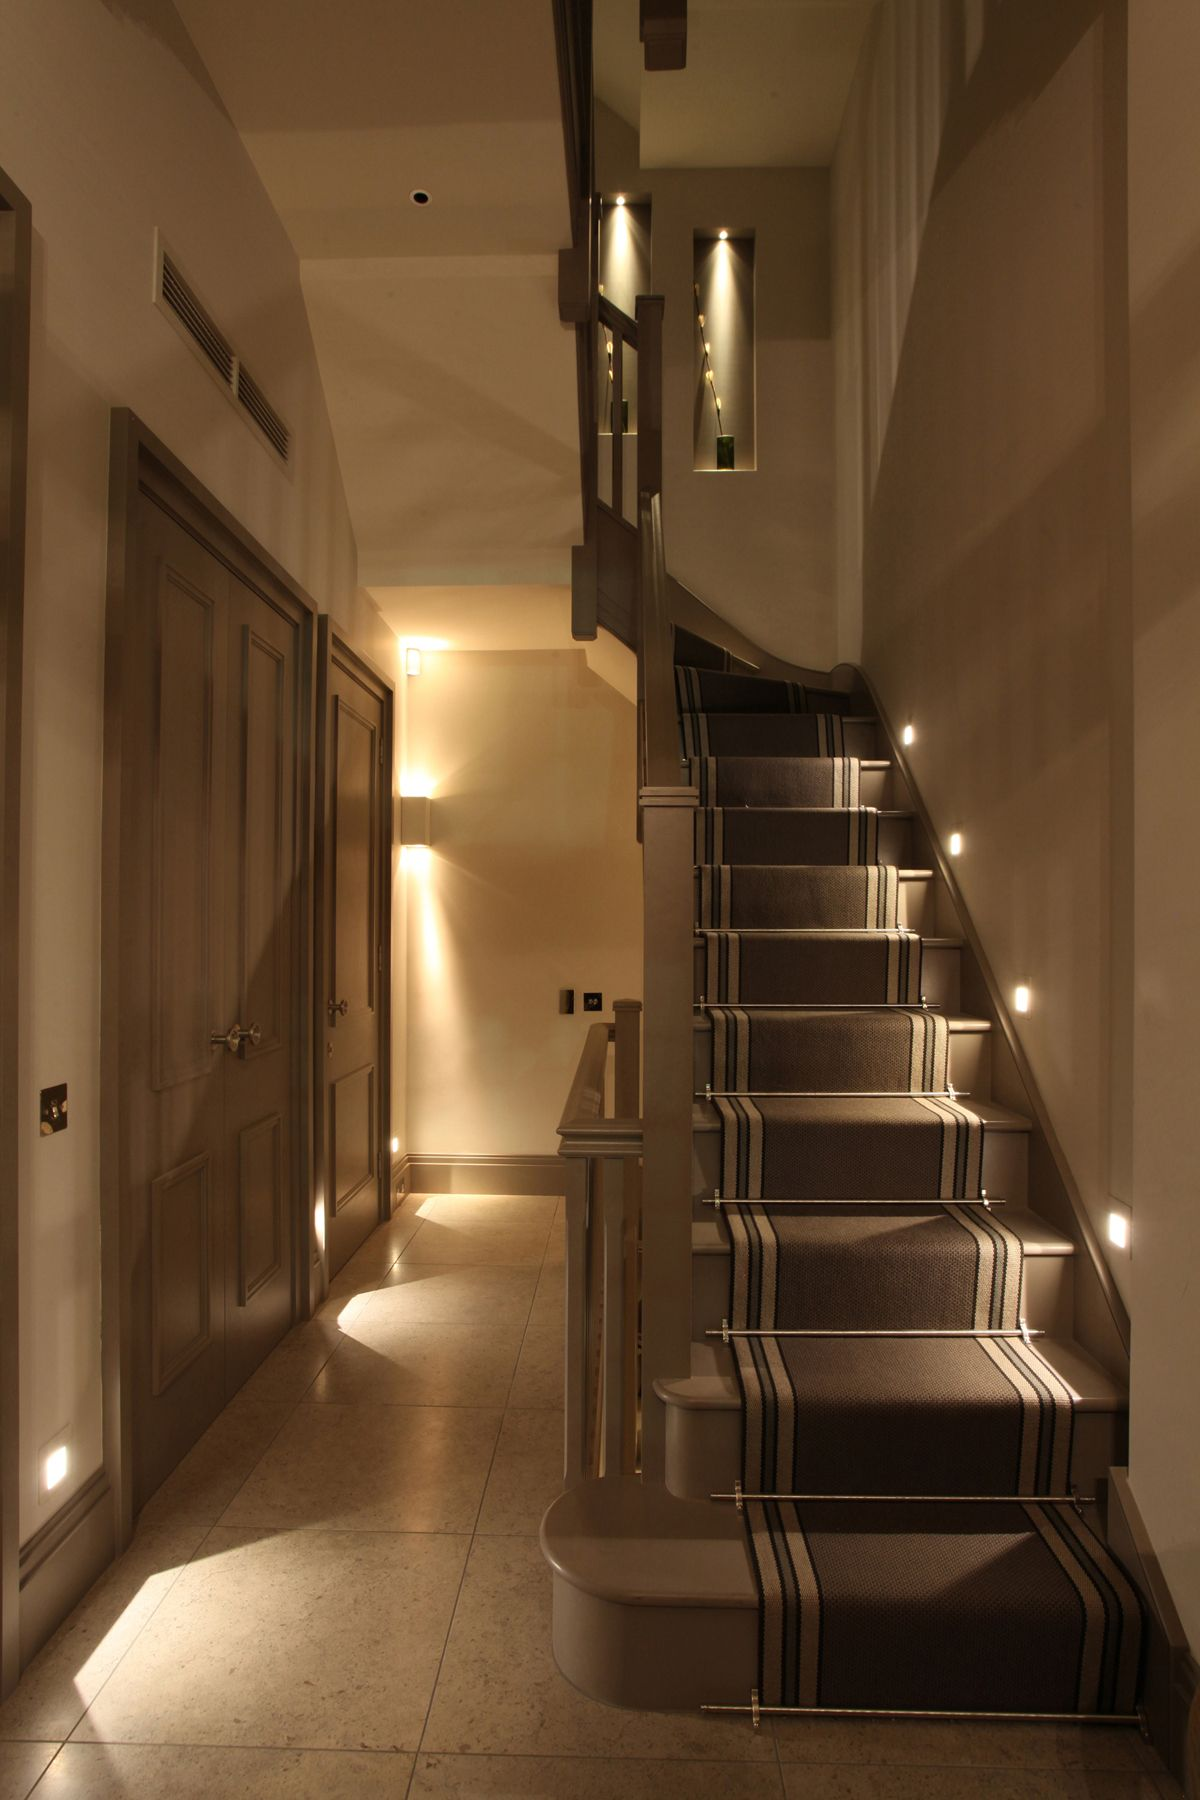 Lighting Basement Washroom Stairs: John_Cullen_entrances 26 Stairs Lighting Might Work On Our